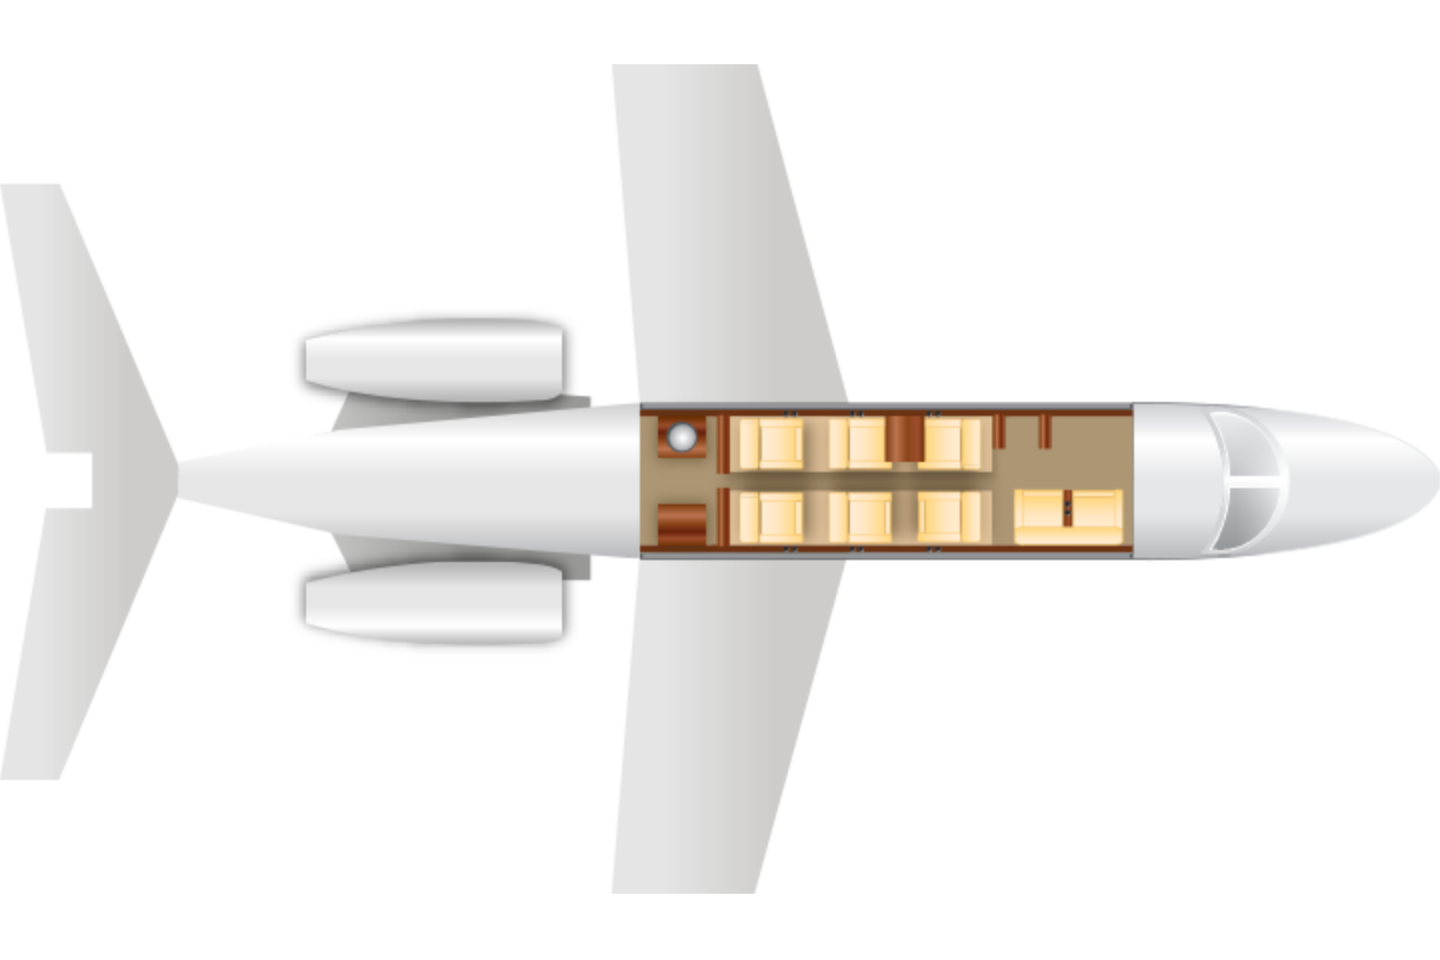 citation-xls-transparent-1412620121.png Floor Plan View